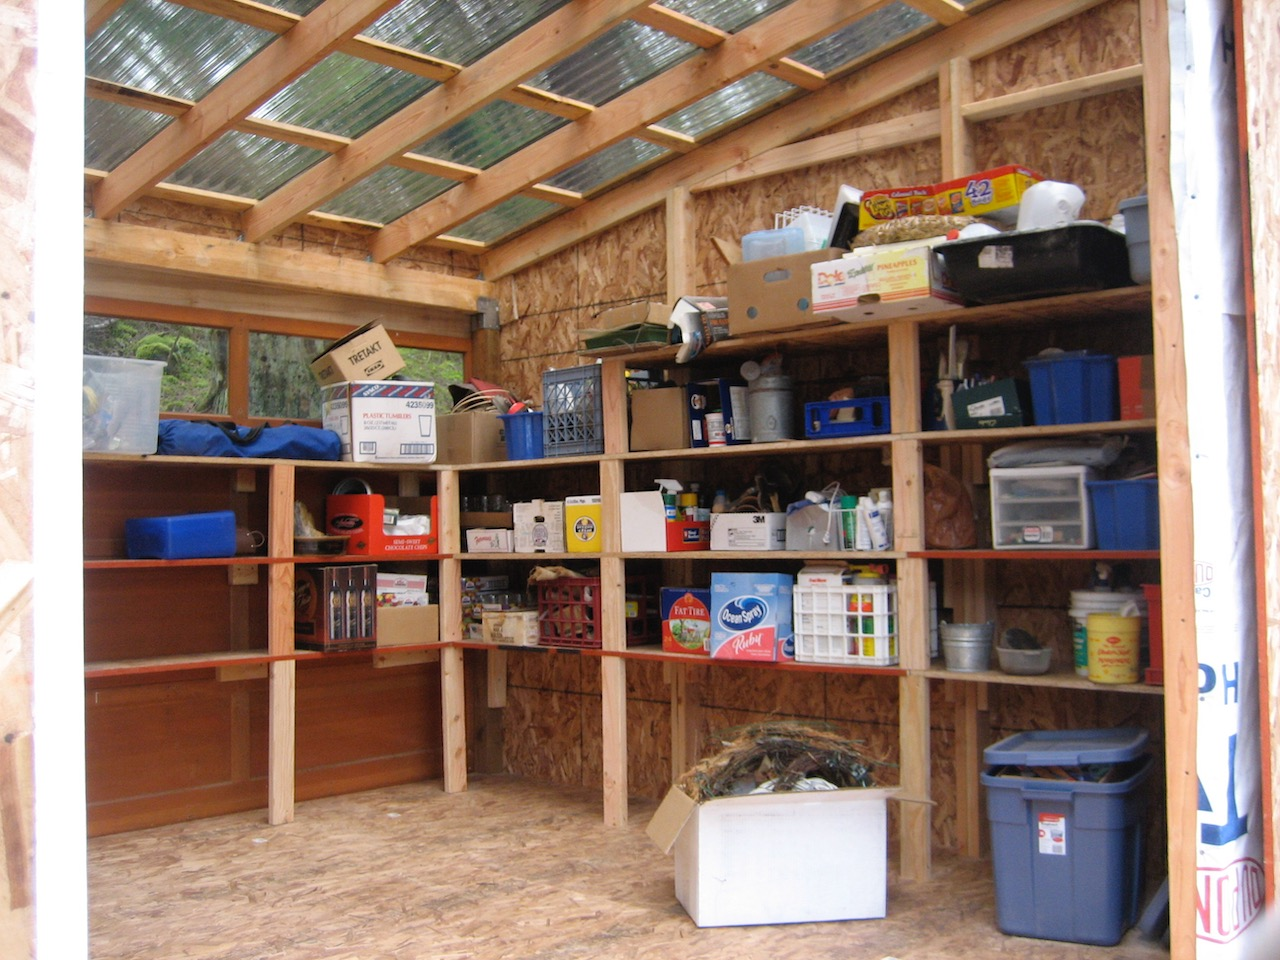 Yvonne's shed ready for use. Note how lioght floods in through polycarbonate roof